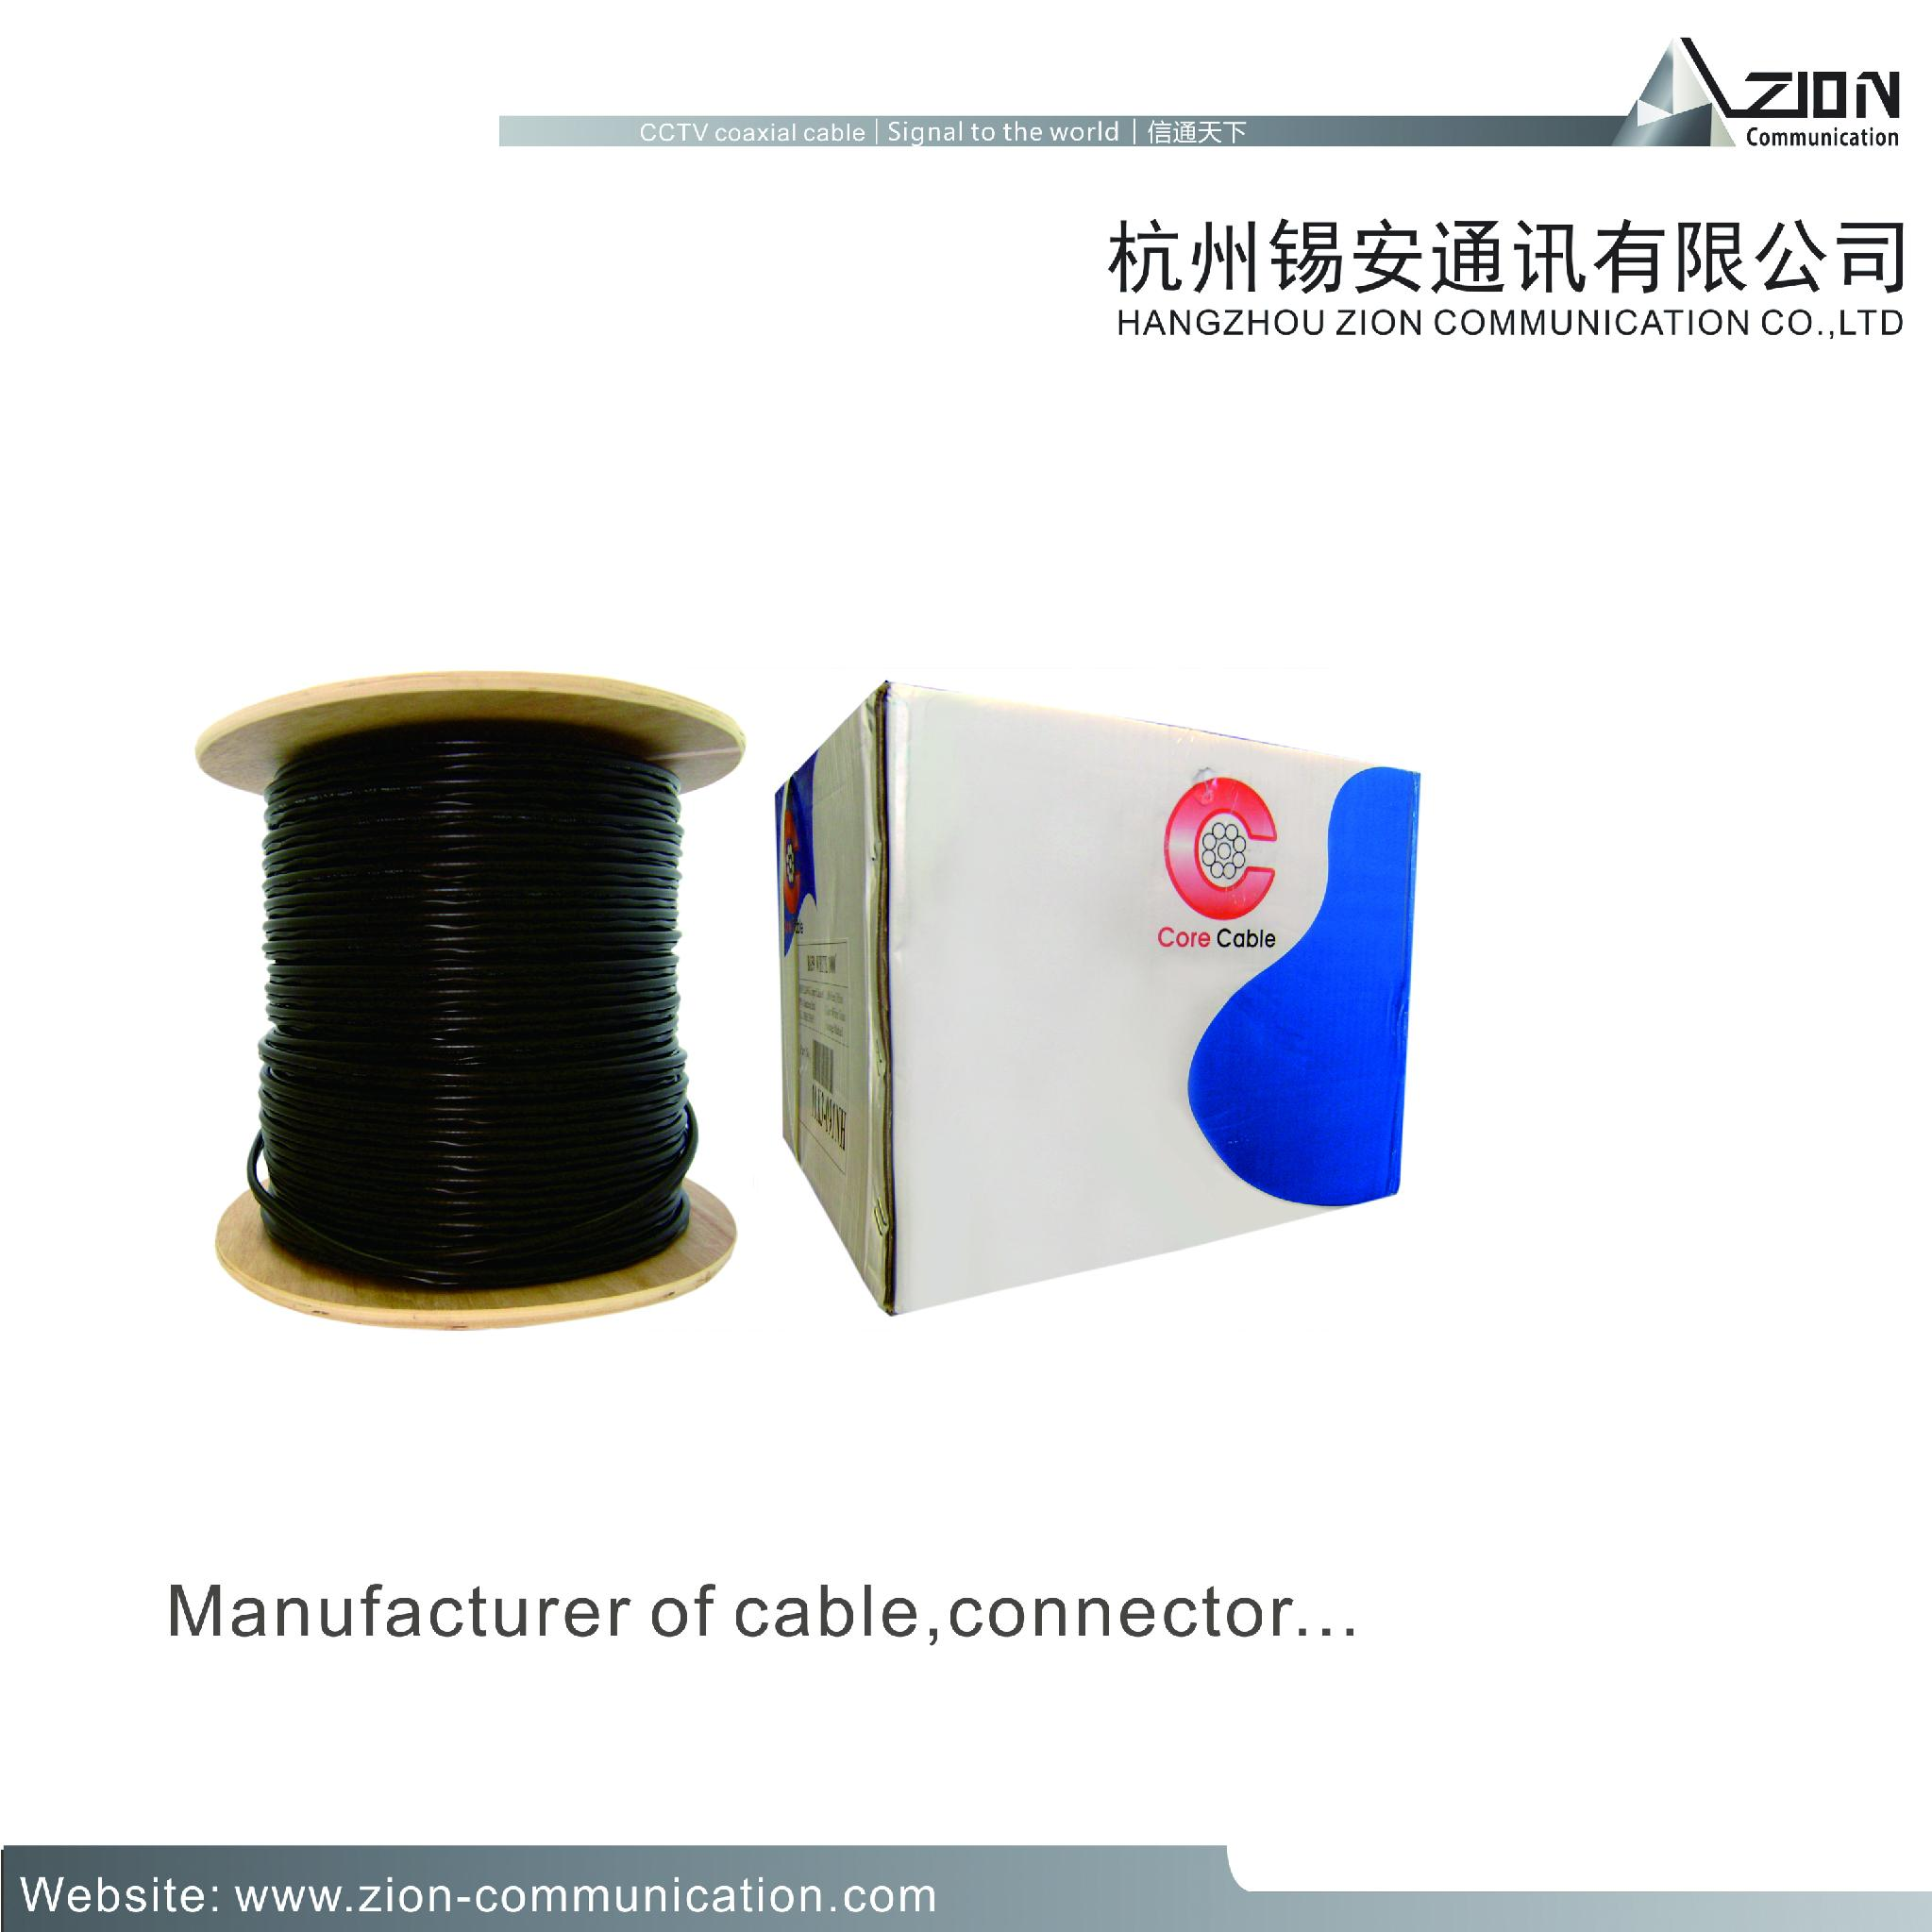 RG59 B/U - Clark Wire & Cable 0.64BC SPE 95% CCA 6.0 PVC coaxial cable supplier 1